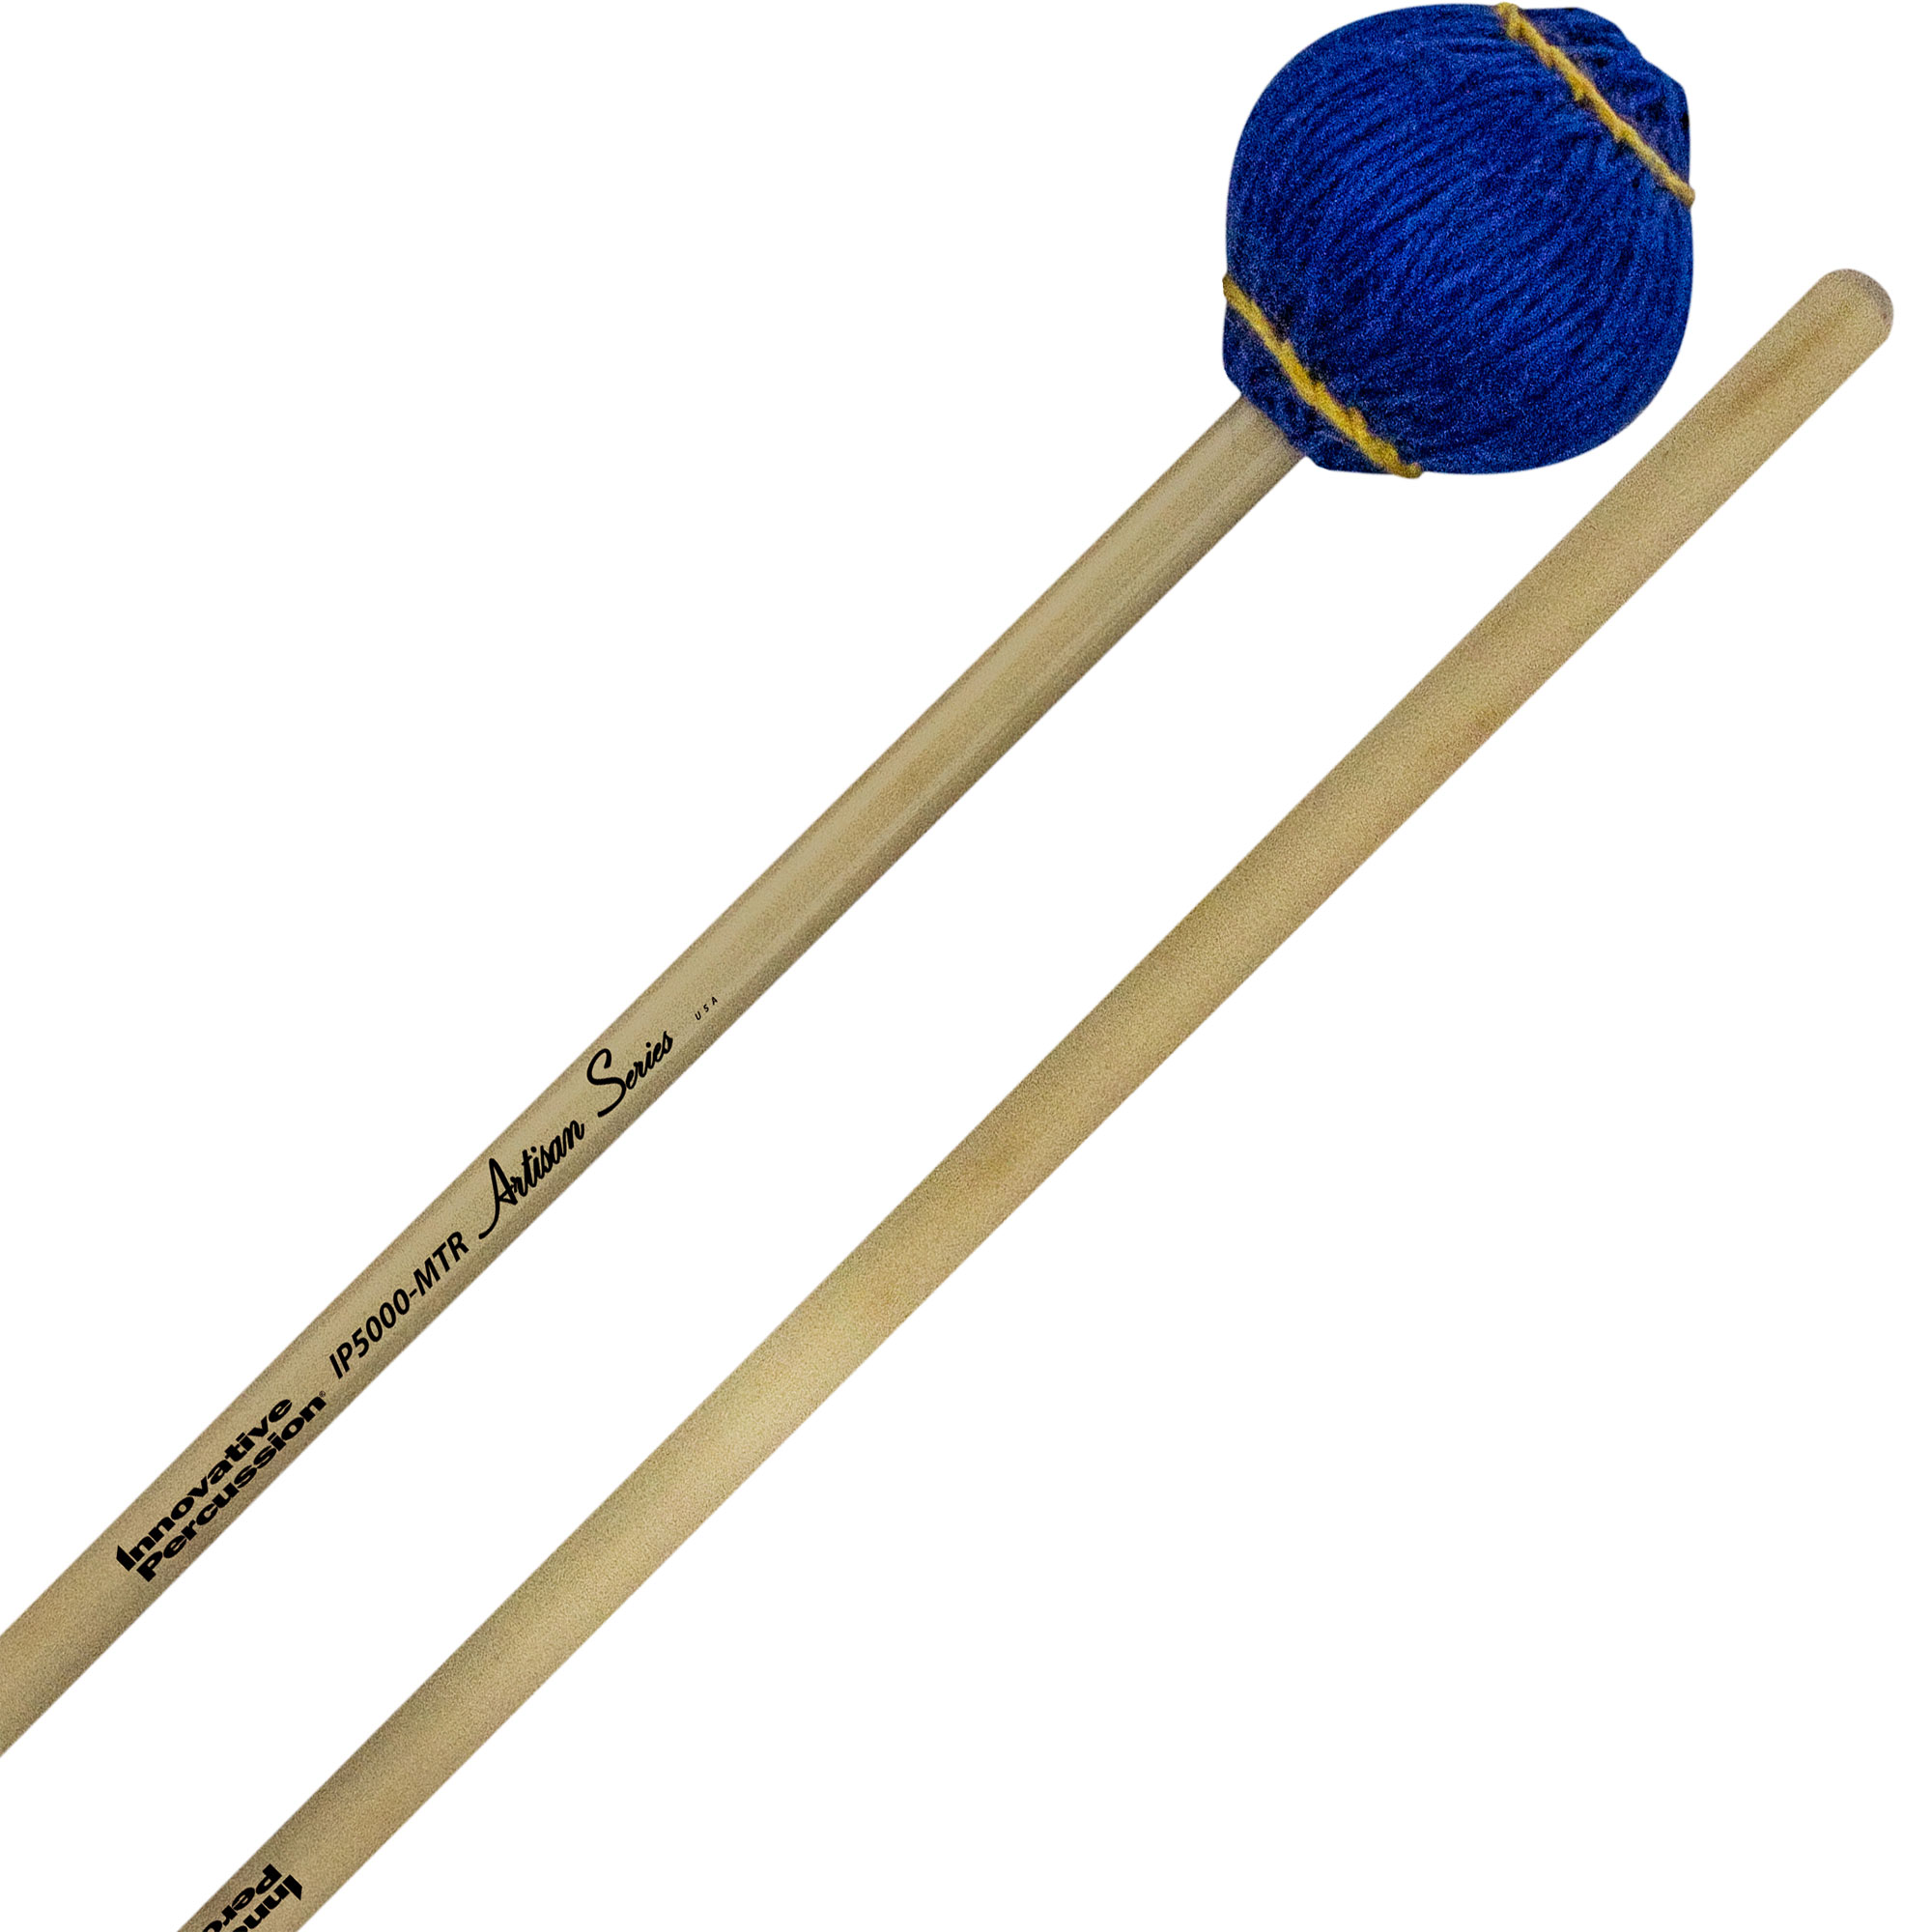 Innovative Percussion Artisan Series Multi-Tone Marimba Mallets with Rattan Handles